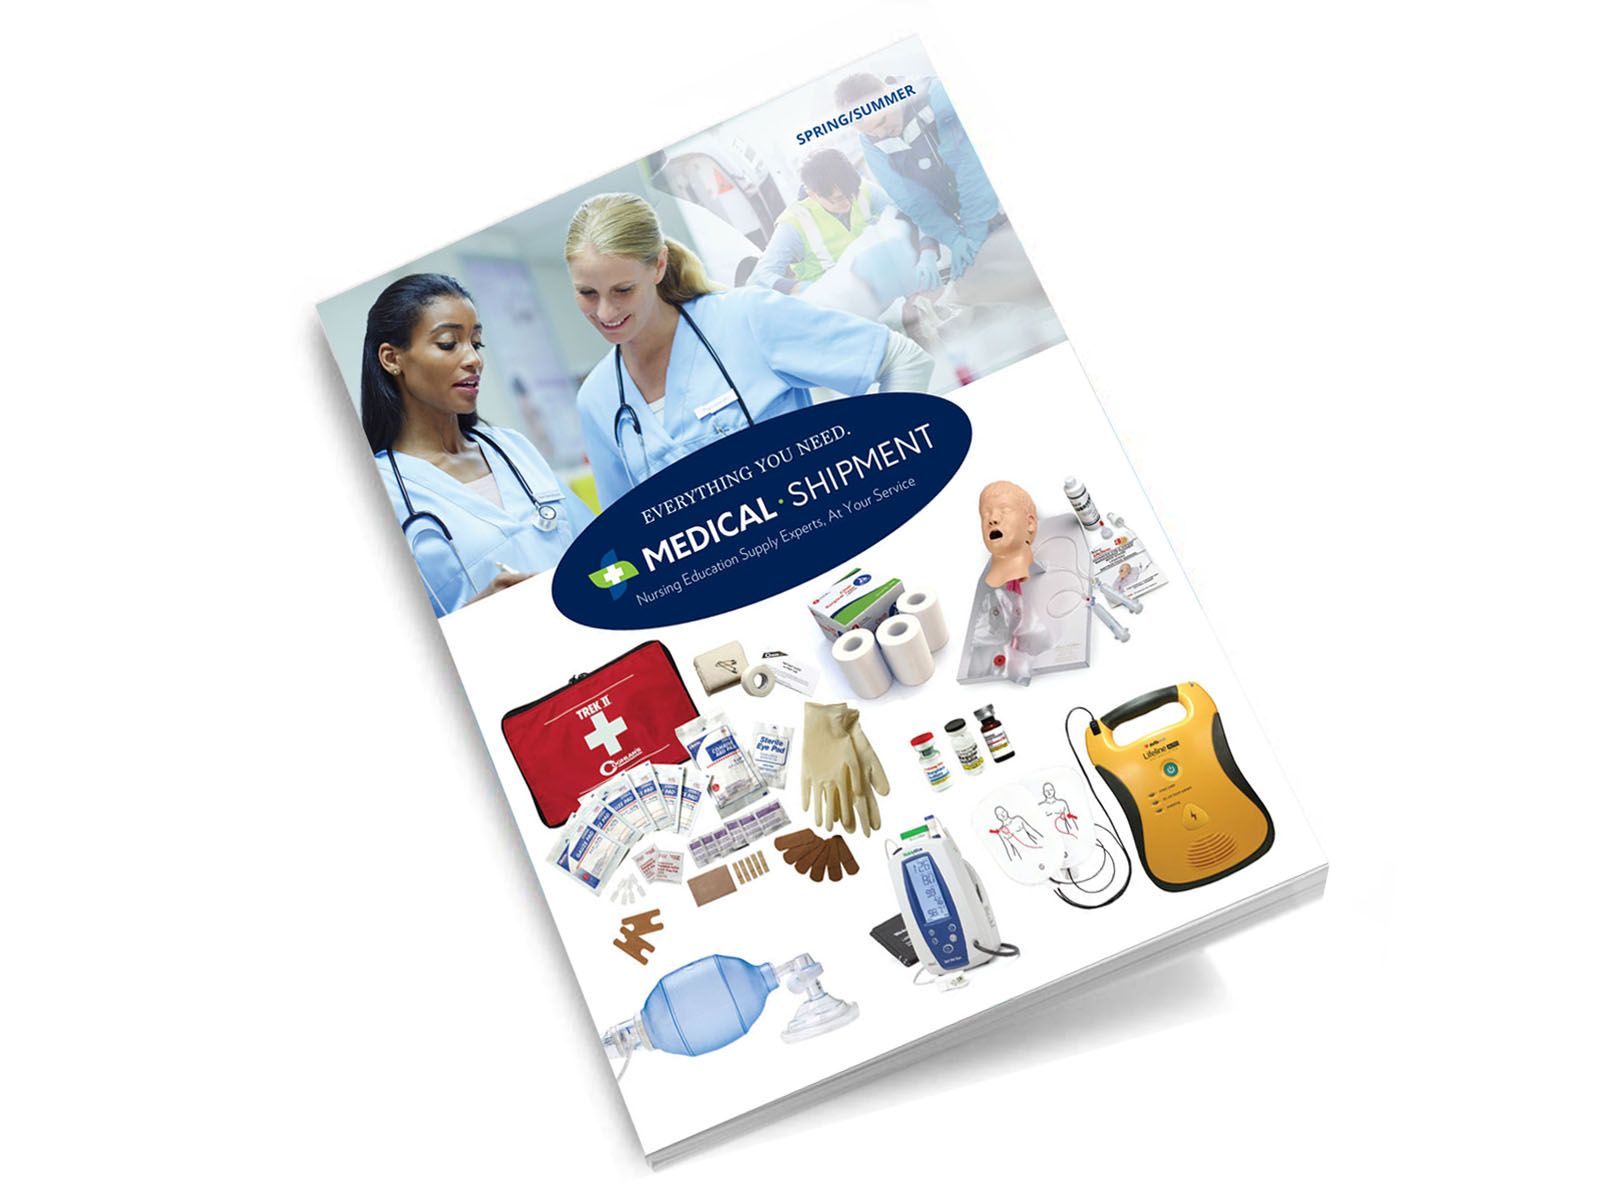 medical shipment catalog design print design